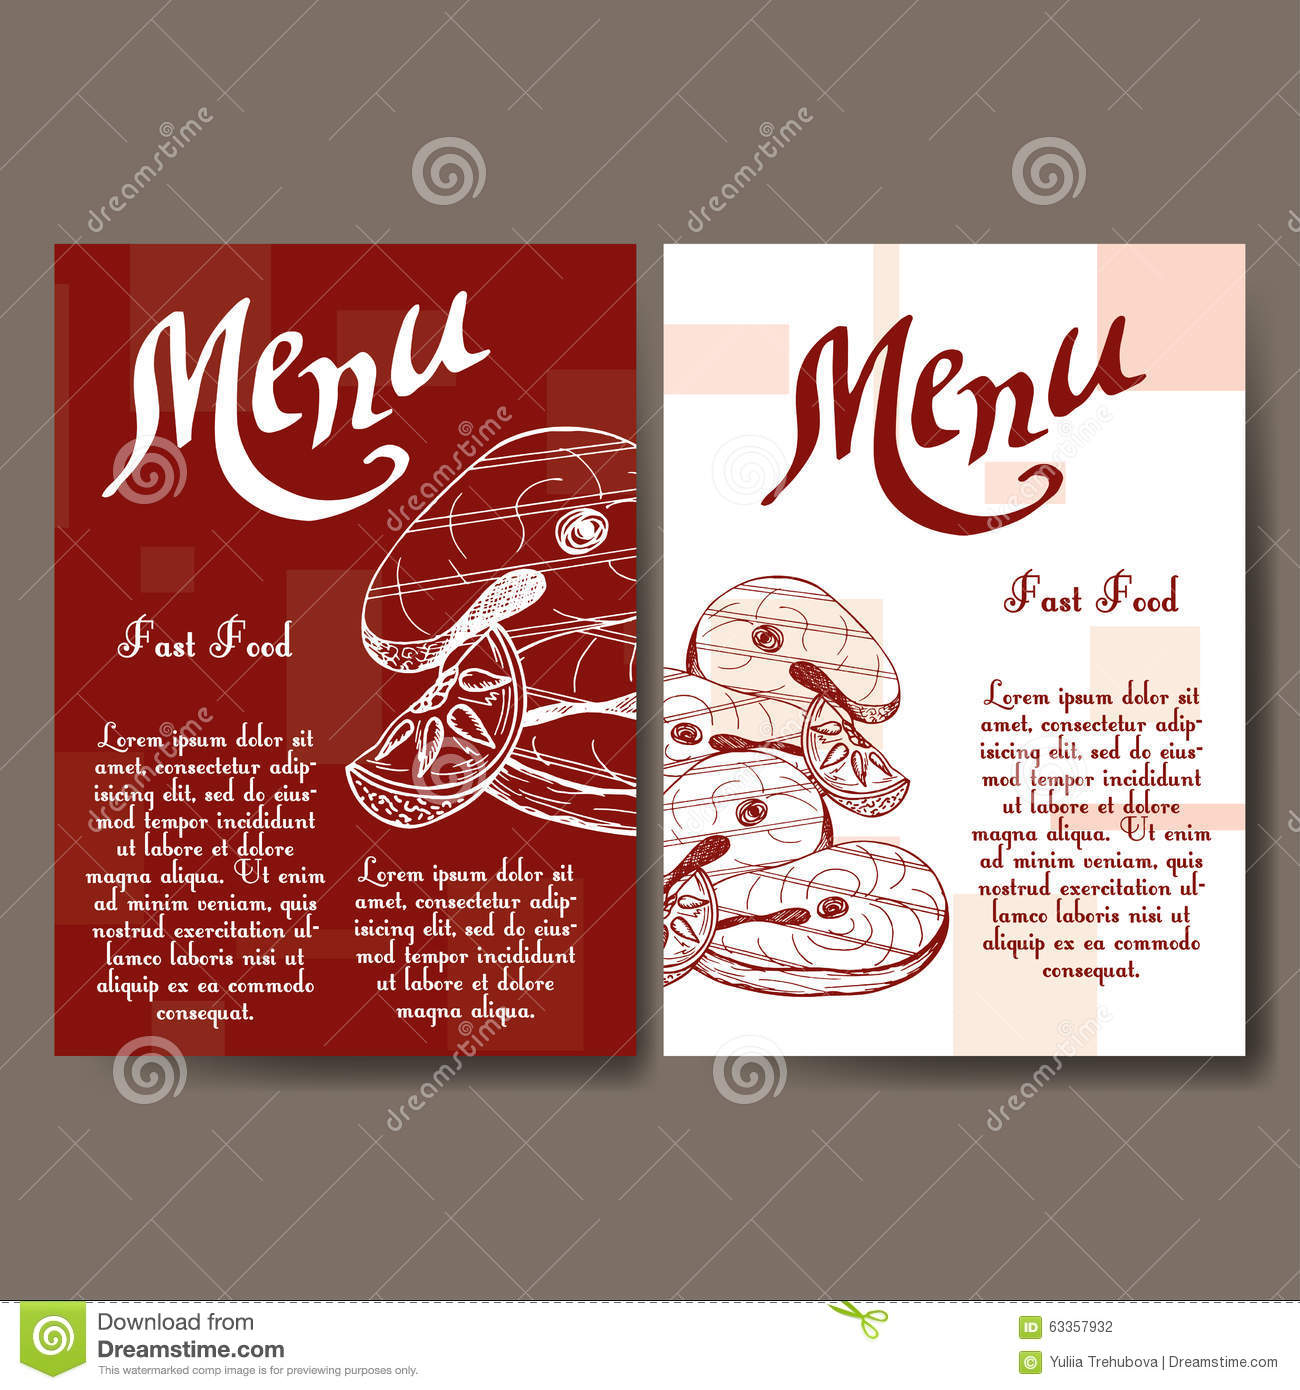 clipart menu makanan - photo #31